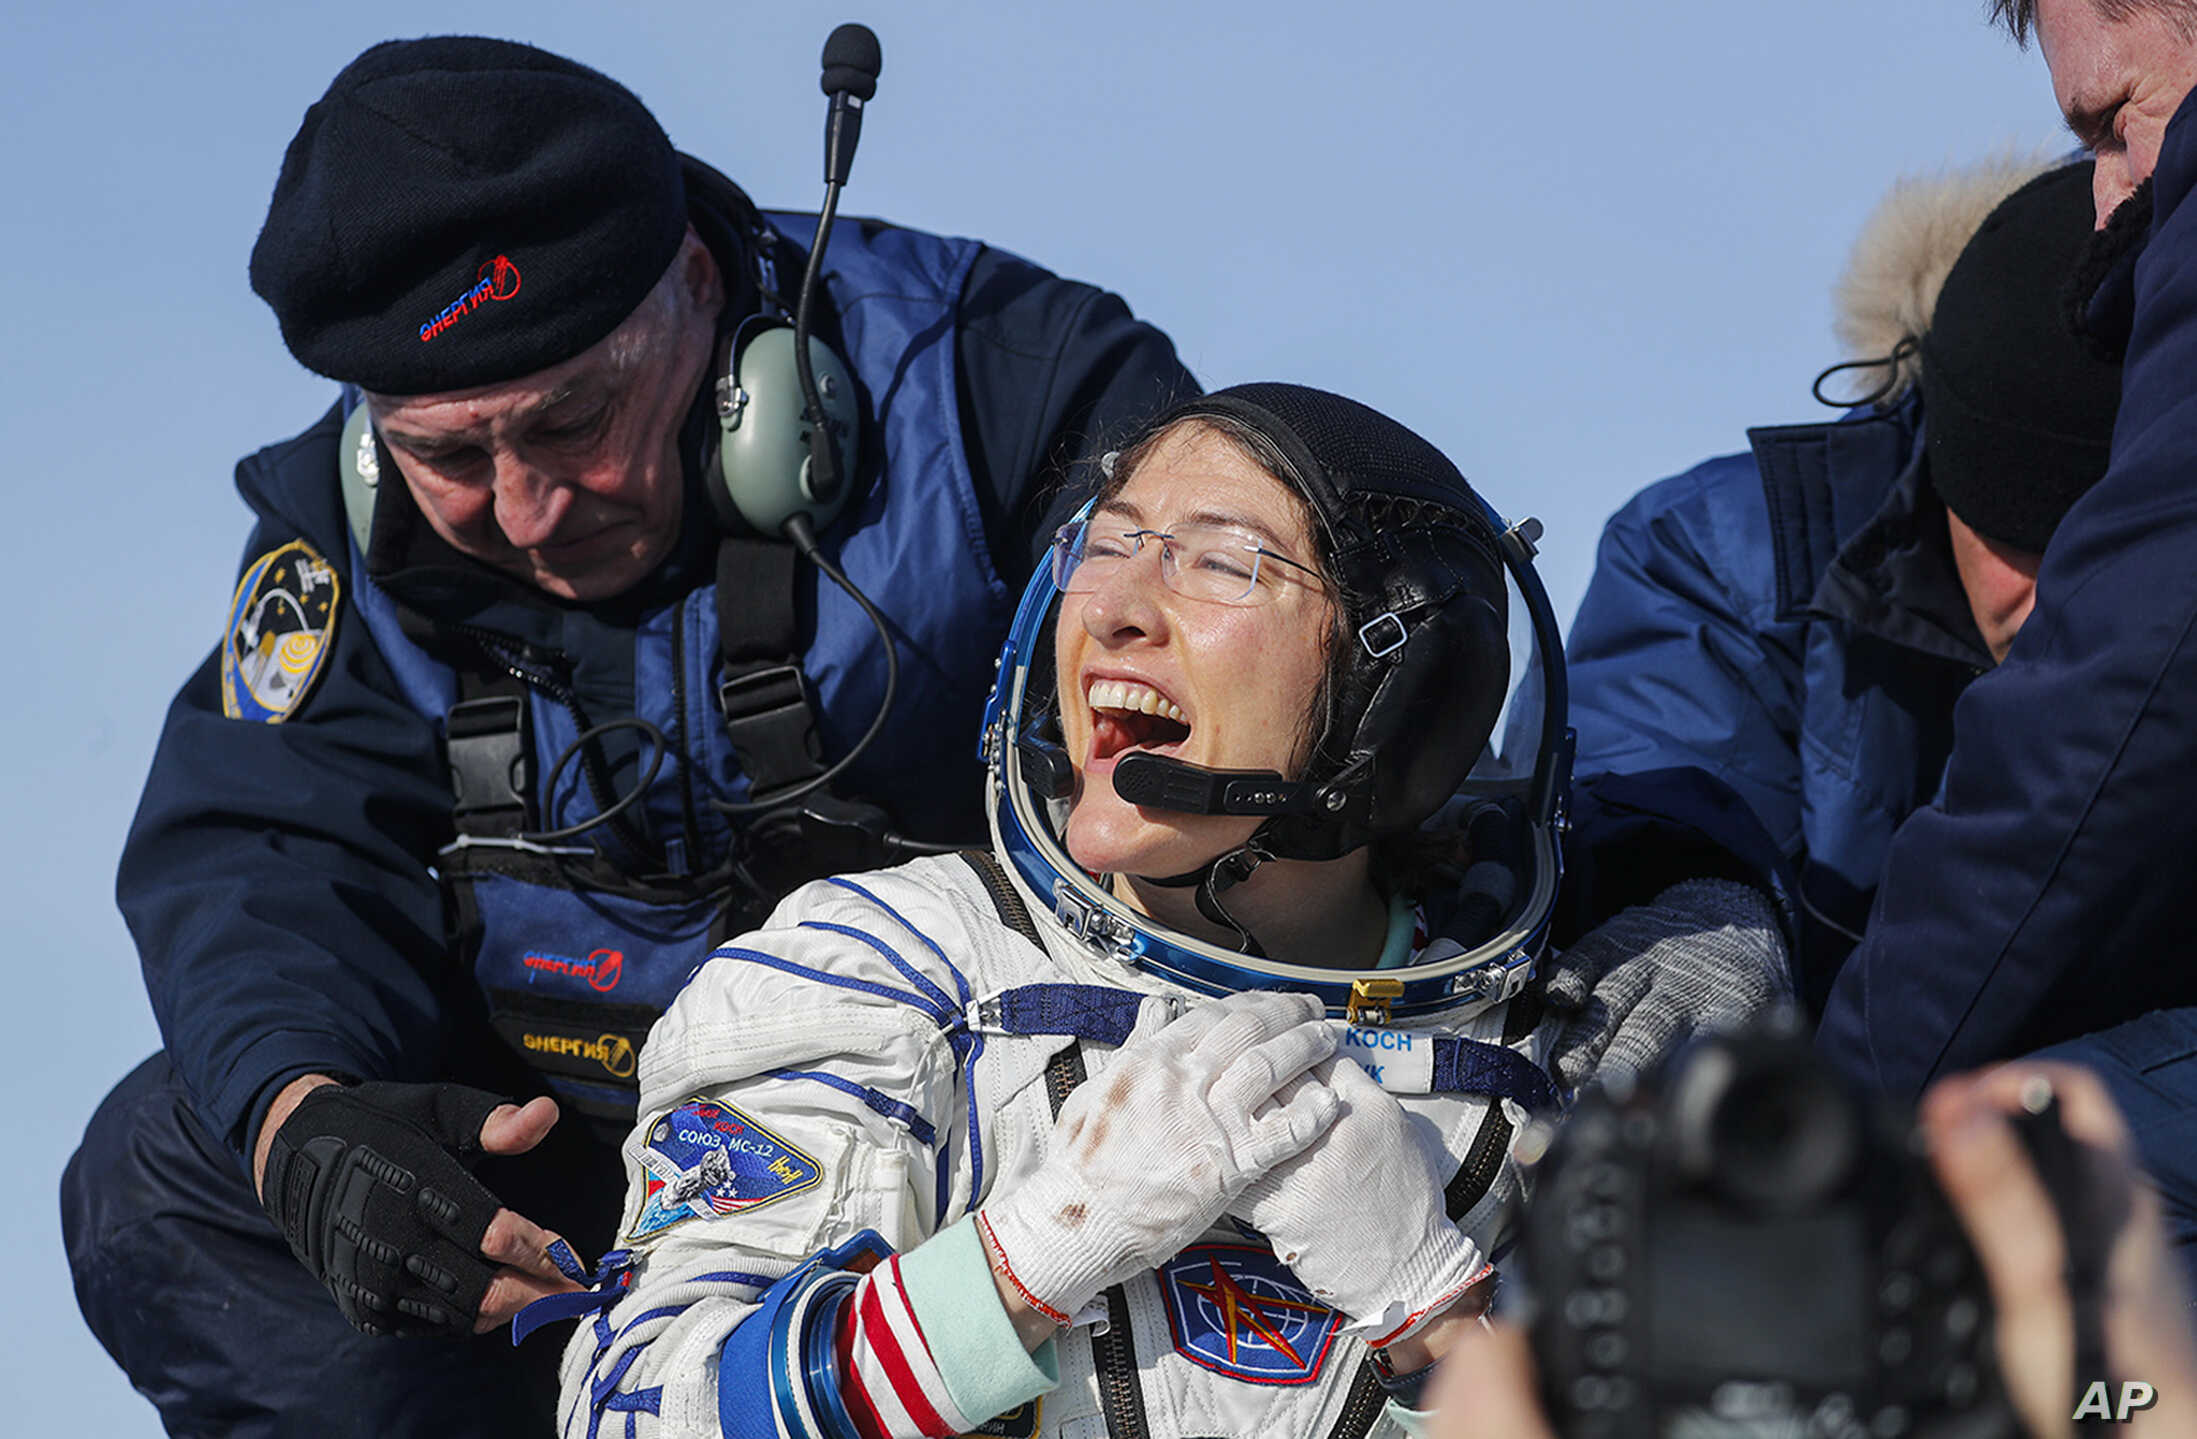 U.S. astronaut Christina aU.S. astronaut Christina Koch reacts shortly after the landing of the Russian Soyuz MS-13 space capsule about 150 km ( 80 miles) south-east of the Kazakh town of Zhezkazgan, Kazakhstan. och reacts shortly after the landing of the Russian Soyuz MS-13 space capsule about 150 km ( 80 miles…